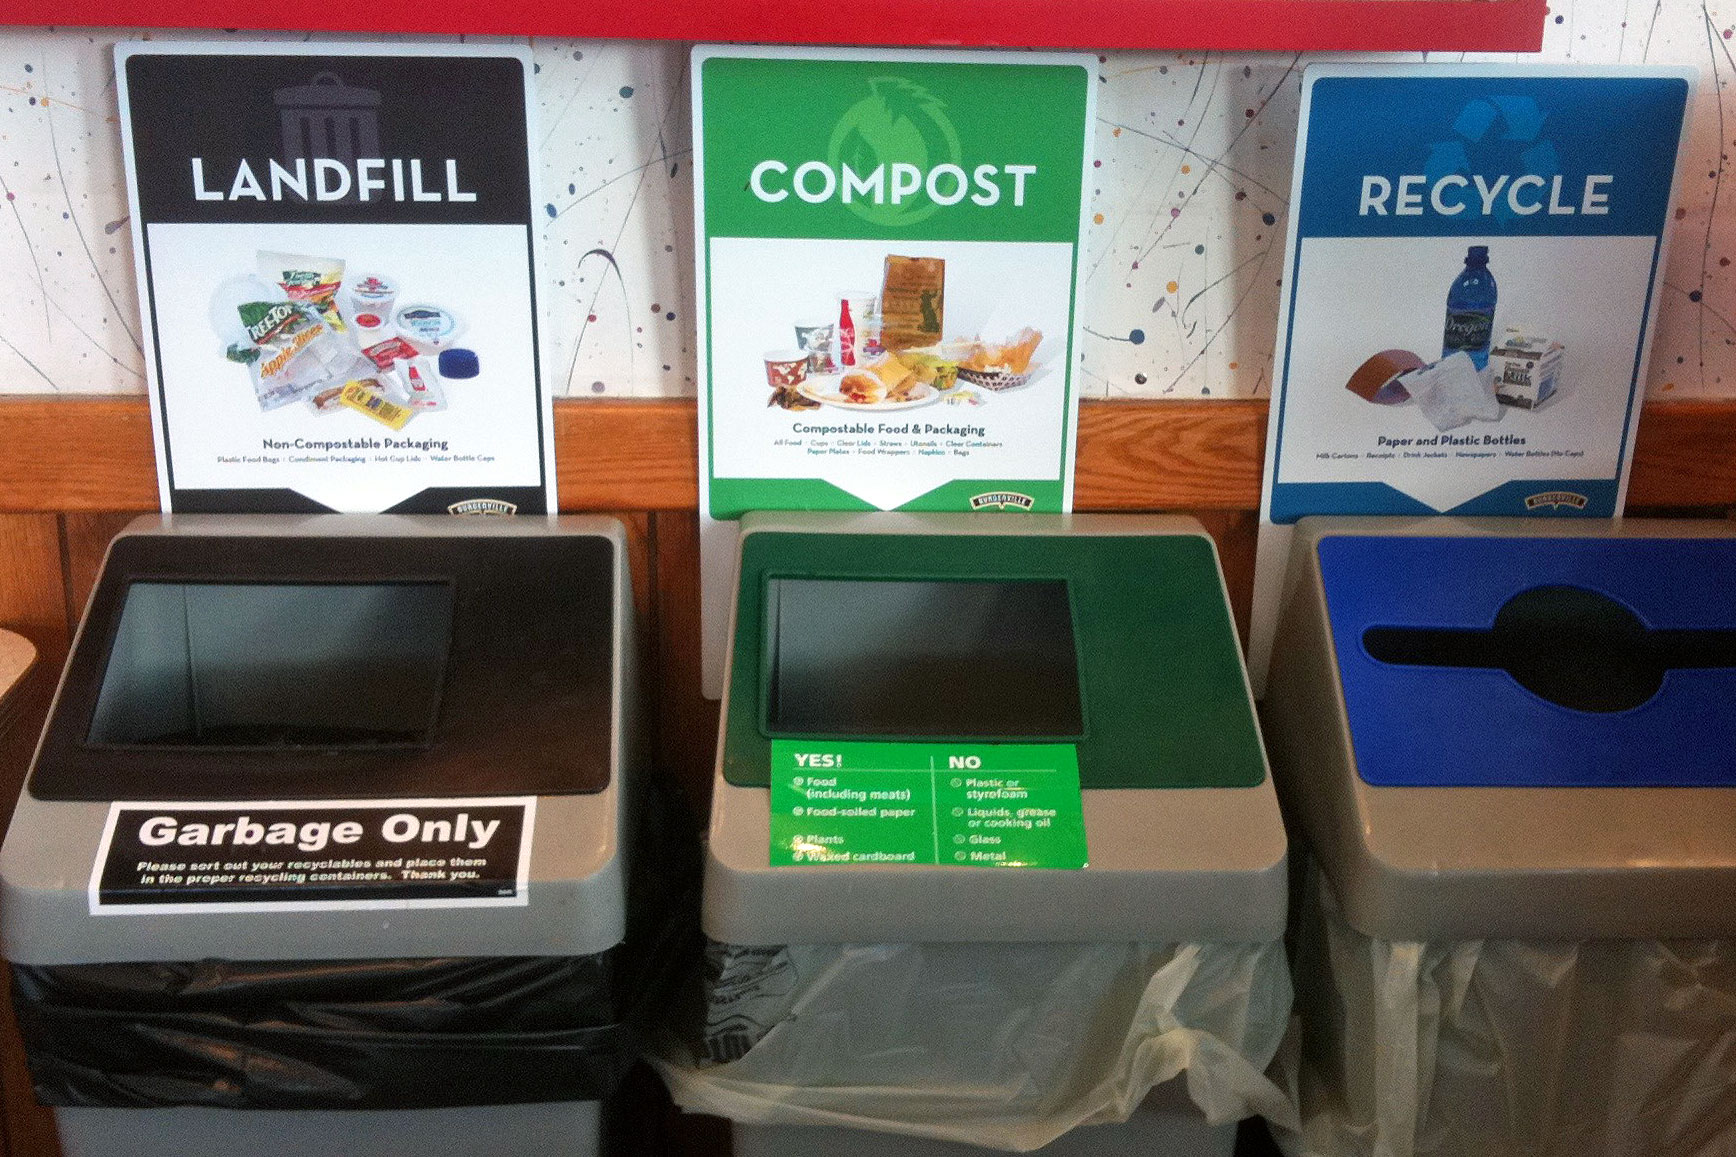 landfill, compost, recycle bins